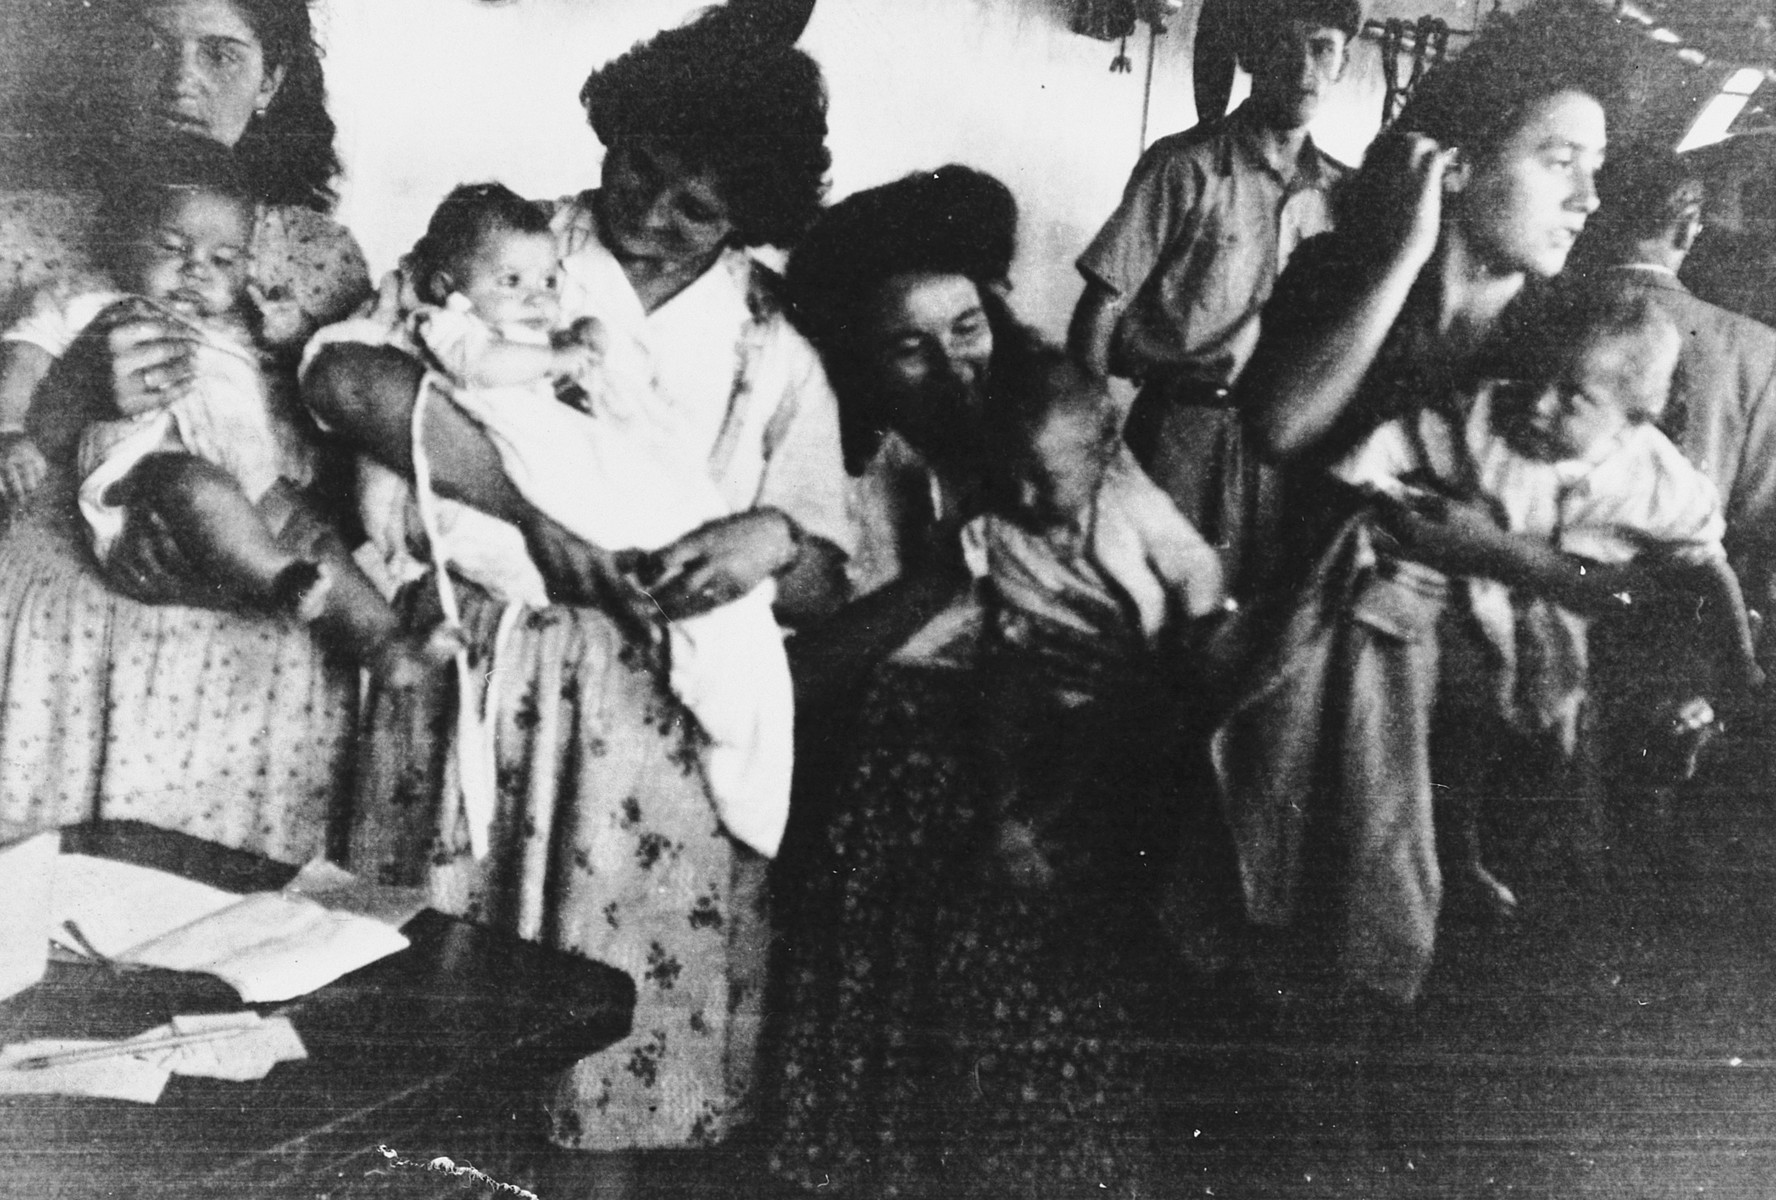 Jewish refugee women carrying infants crowd into the hull of a ship [probably the Mataroa] sailing from Marseilles to Palestine.